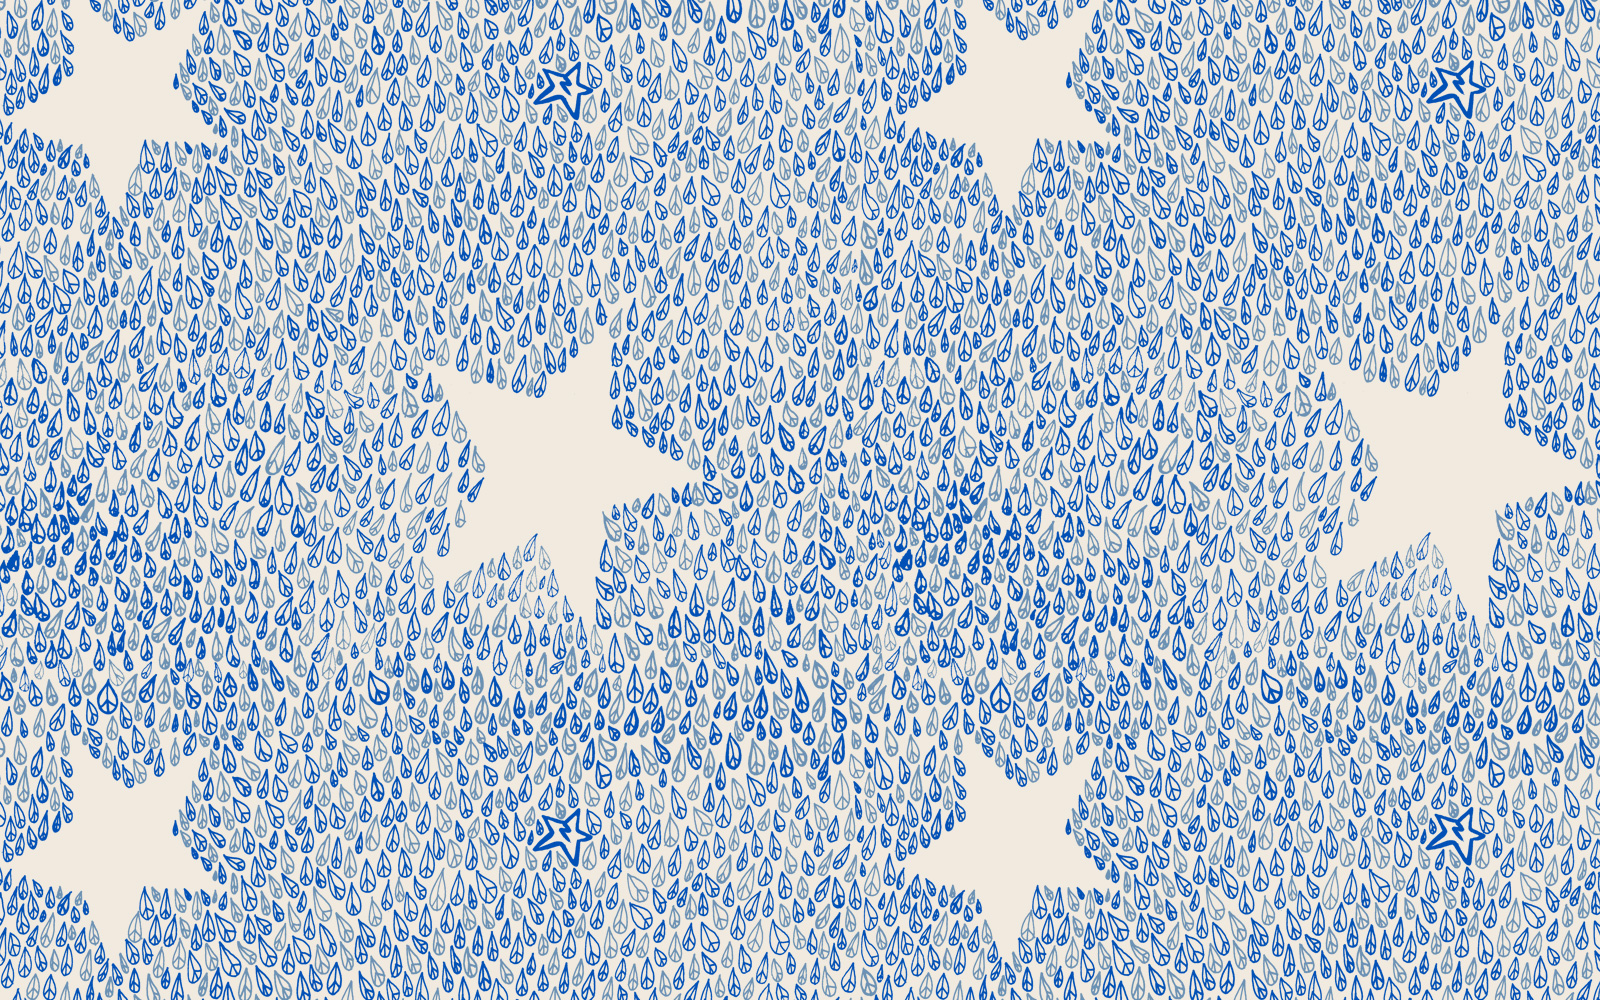 'Peace Star' all-over print for cotton jersey, Zakee Shariff for People Tree, AW13